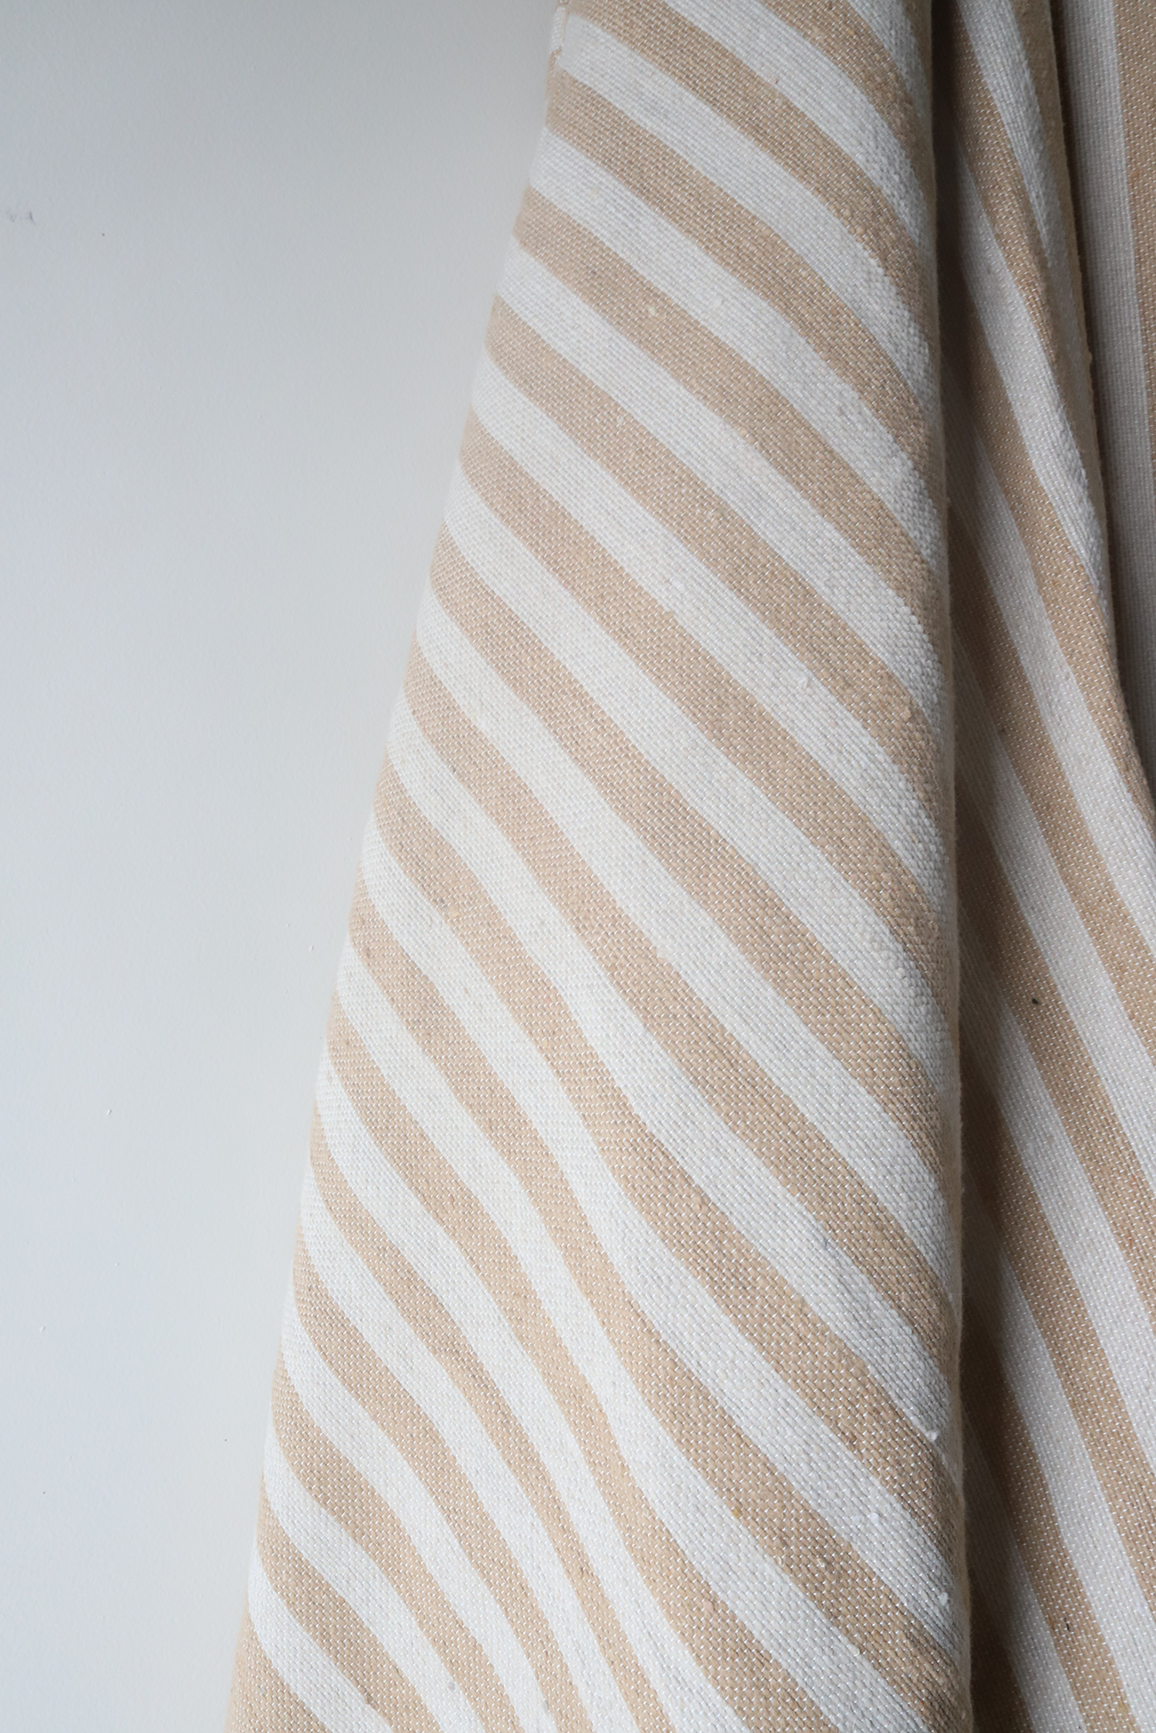 Moroccan Blanket - Camel & Basalt Natural Stripe - Small Cotton